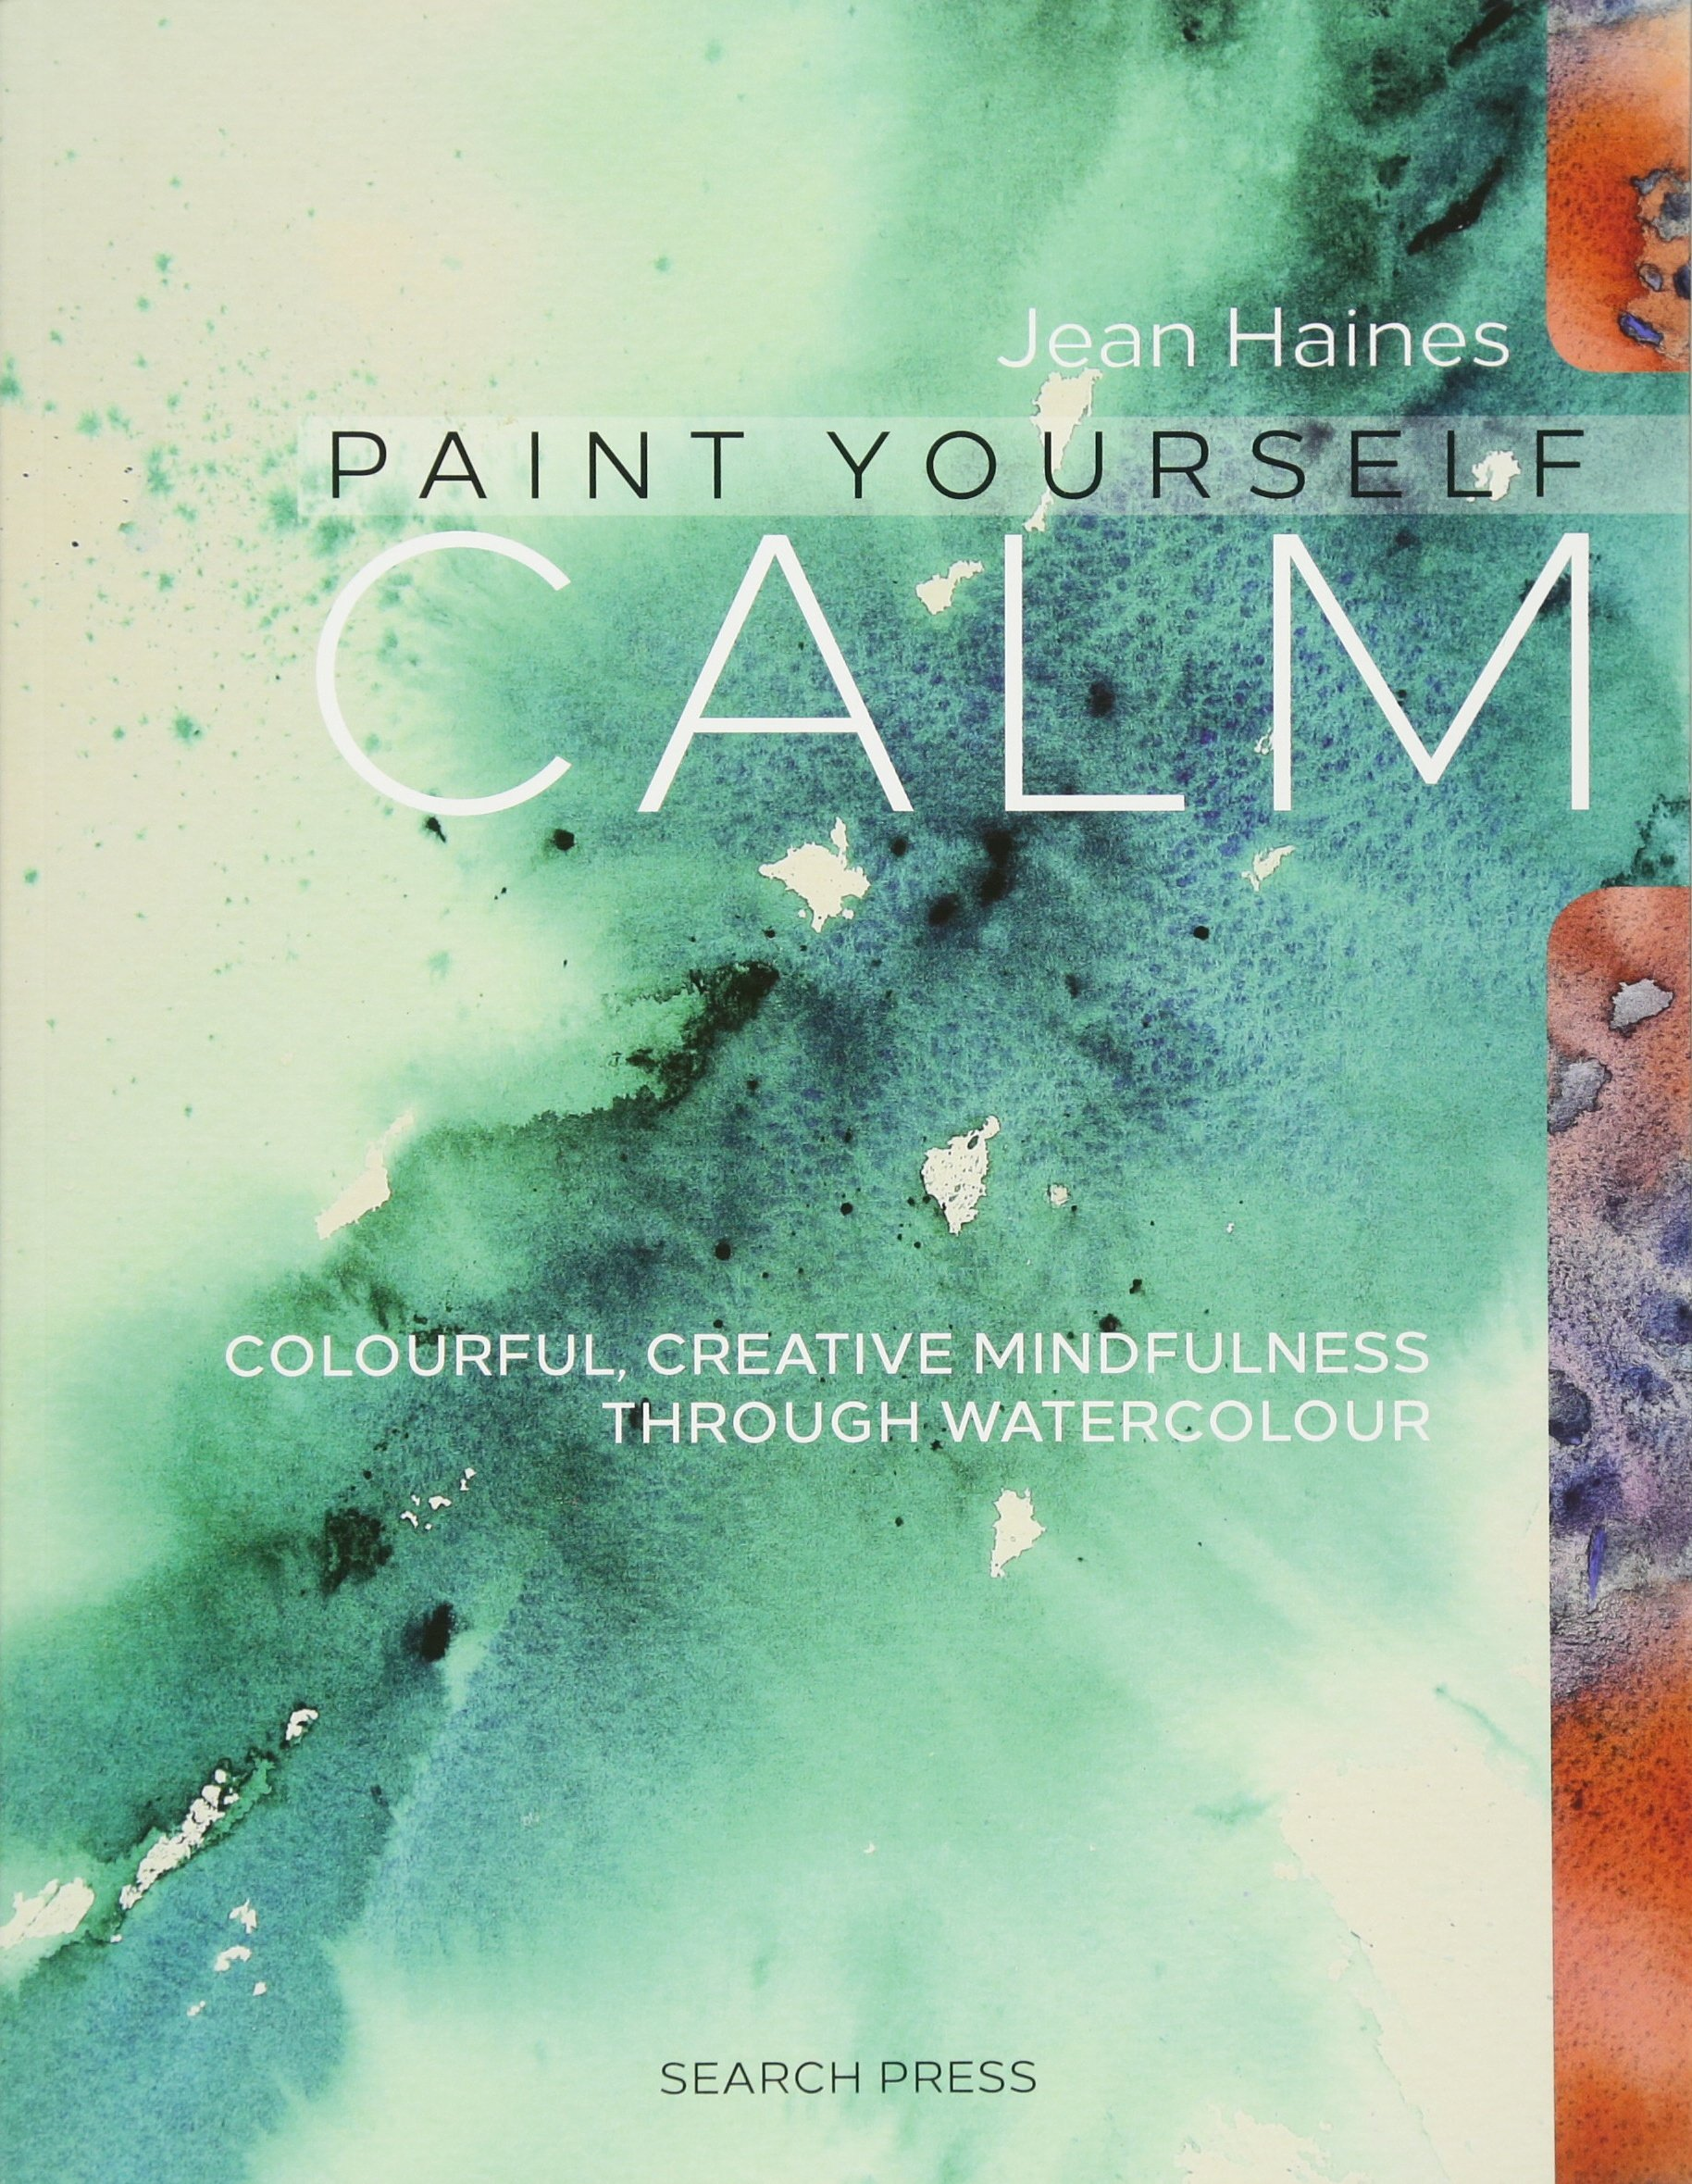 Watercolor book covers - Amazon Com Jean Haines Paint Yourself Calm Colourful Creative Mindfulness Through Watercolour 9781782212829 Jean Haines Books